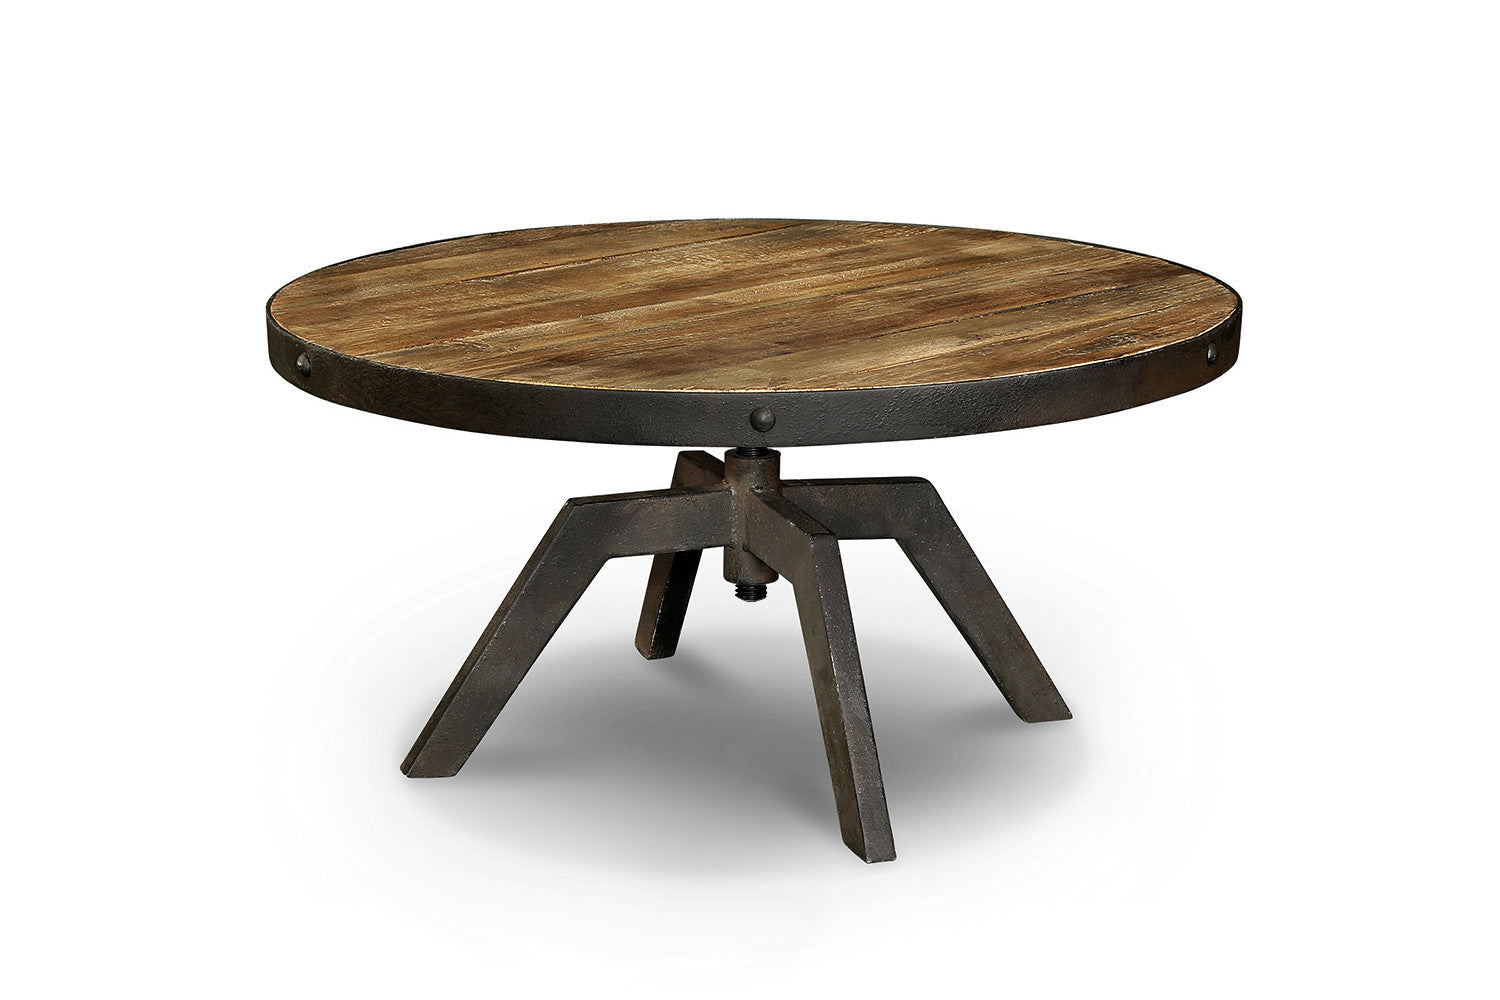 Table basse industrielle en bois et m tal tb03 rose for Table basse industrielle metal et bois